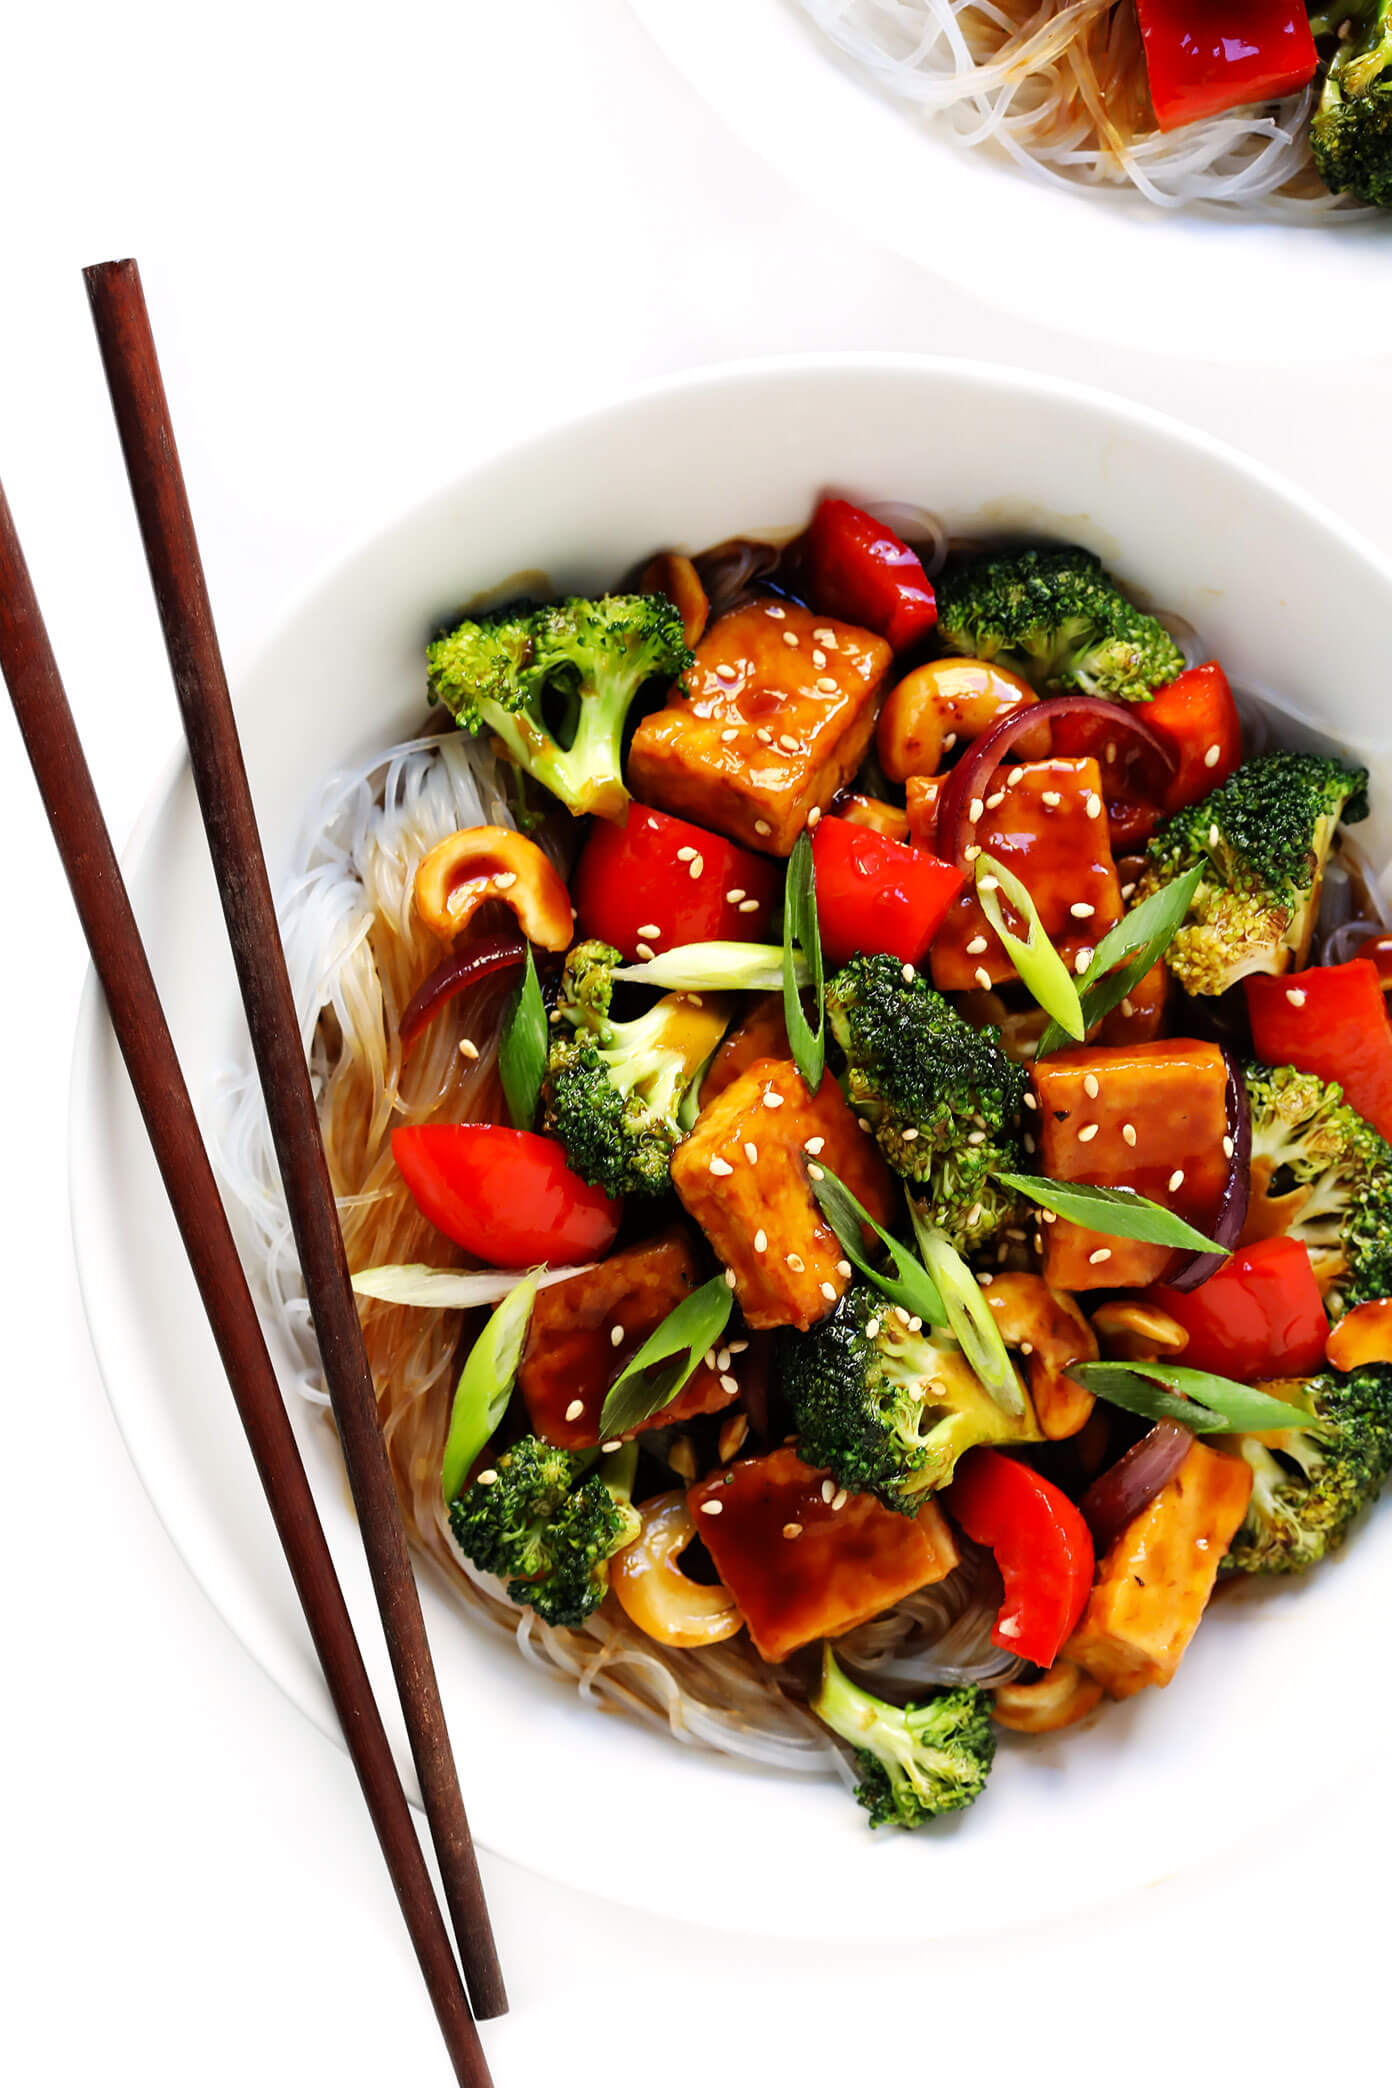 Cashew Tofu with Broccoli, Bell Peppers, Onions and Rice Noodles